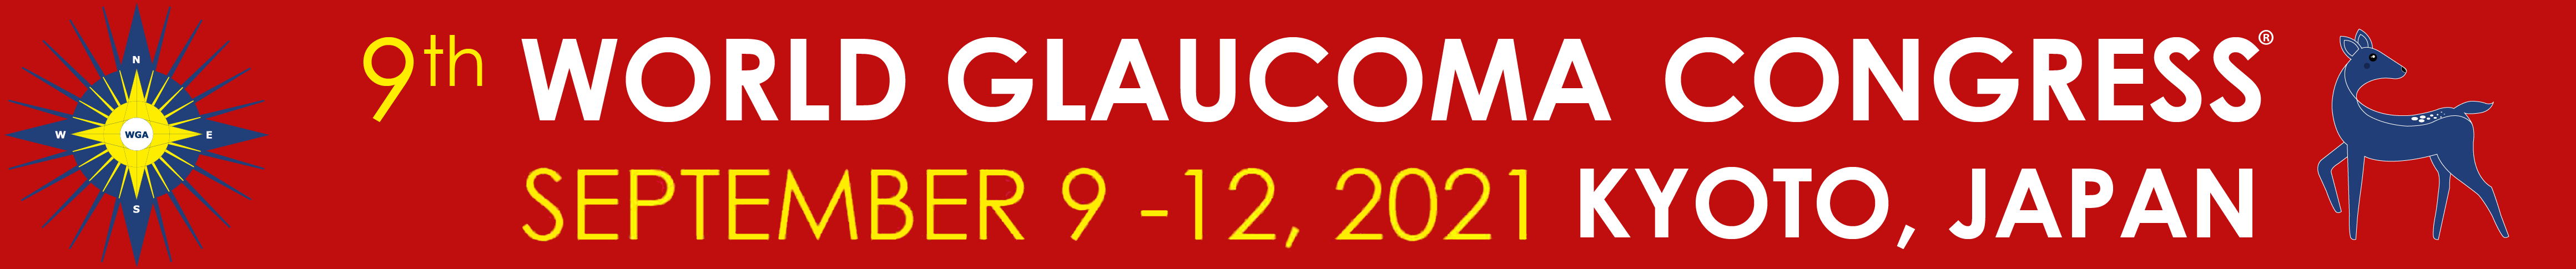 World Glaucoma Congress 2021